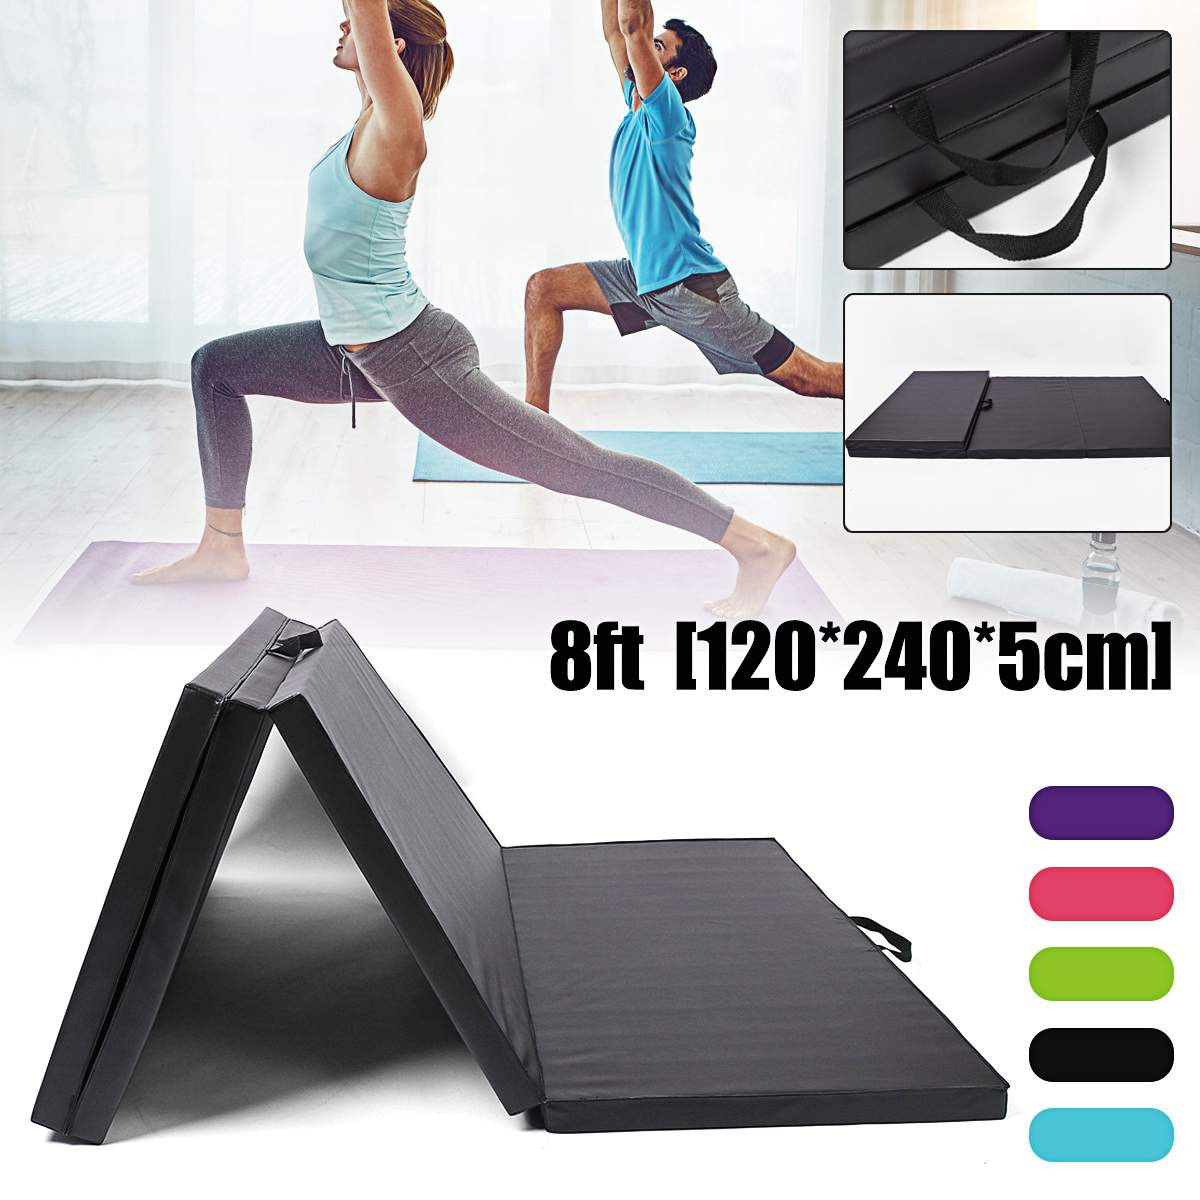 120*240*5 cm Pliage Tapis De Gymnastique Gymnastique Au Sol Tapis De Yoga Exercice Fitness Pilates Gym Exercice de Pique-Nique Pliante tapis Gym Yoga